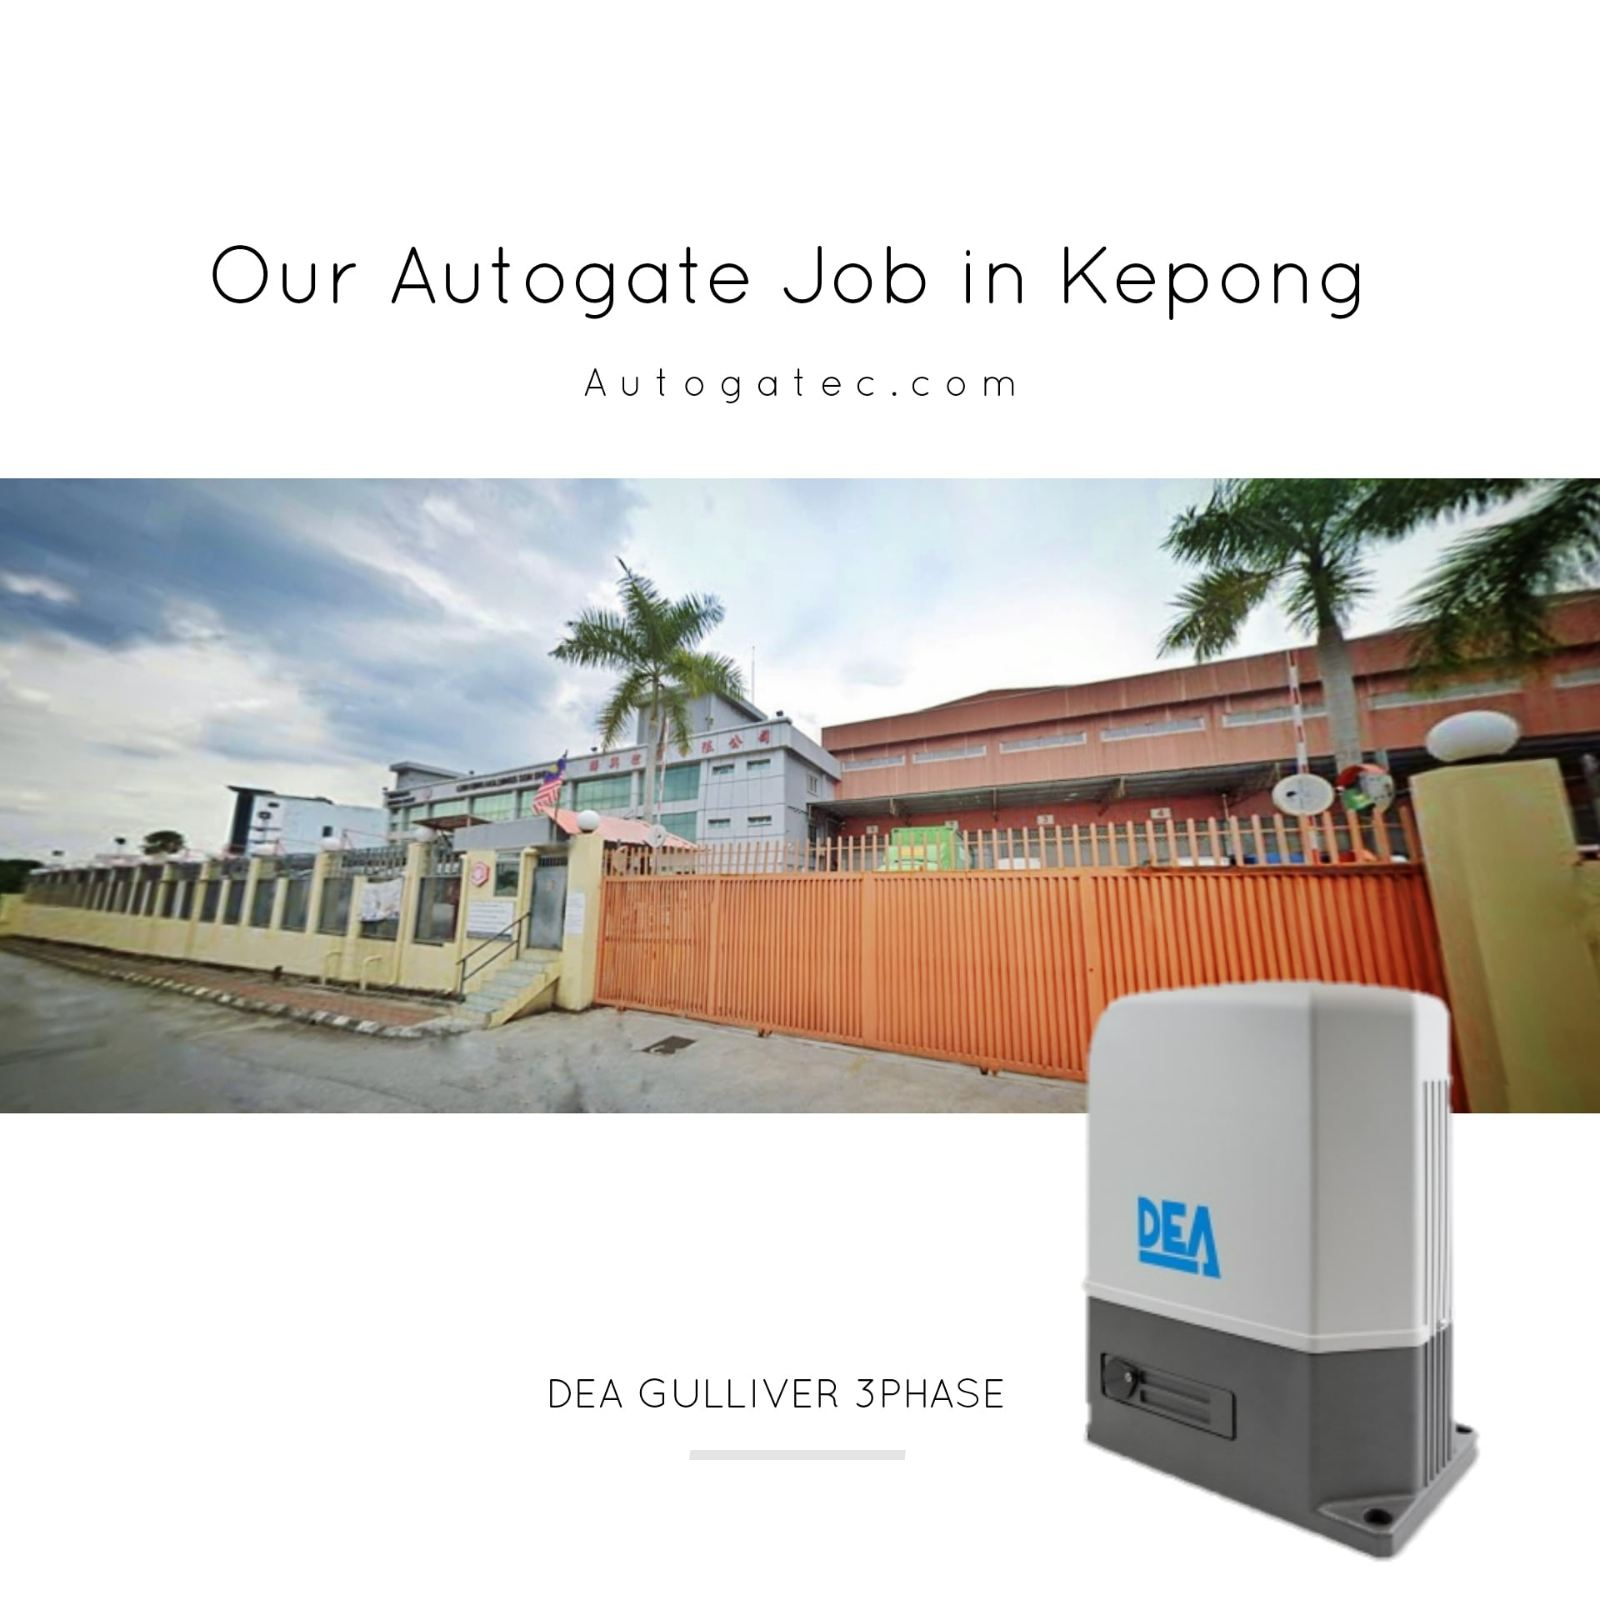 Autogate in Kepong